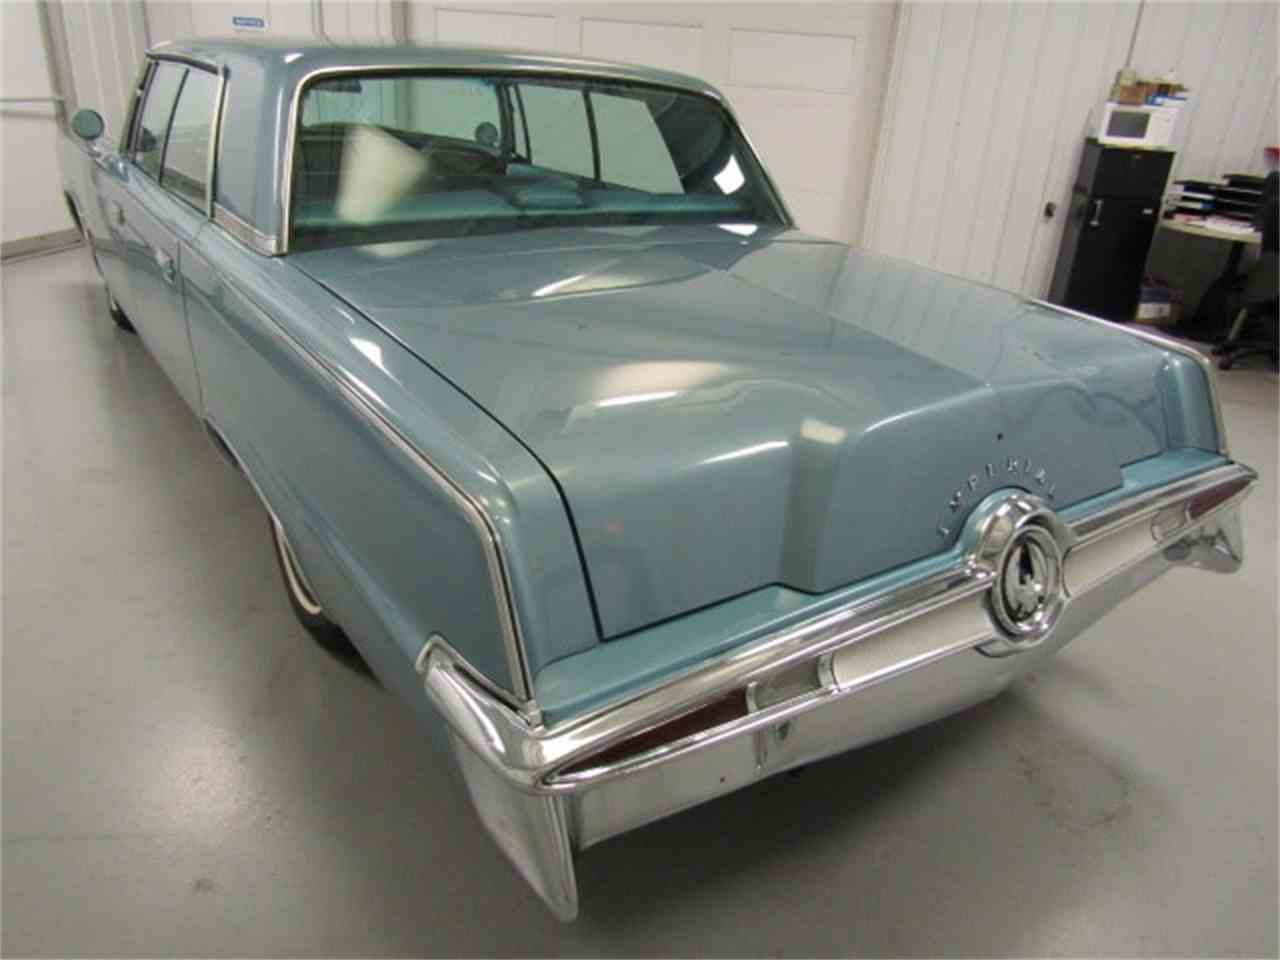 Large Picture of Classic '64 Chrysler Imperial - $21,970.00 - JLDR